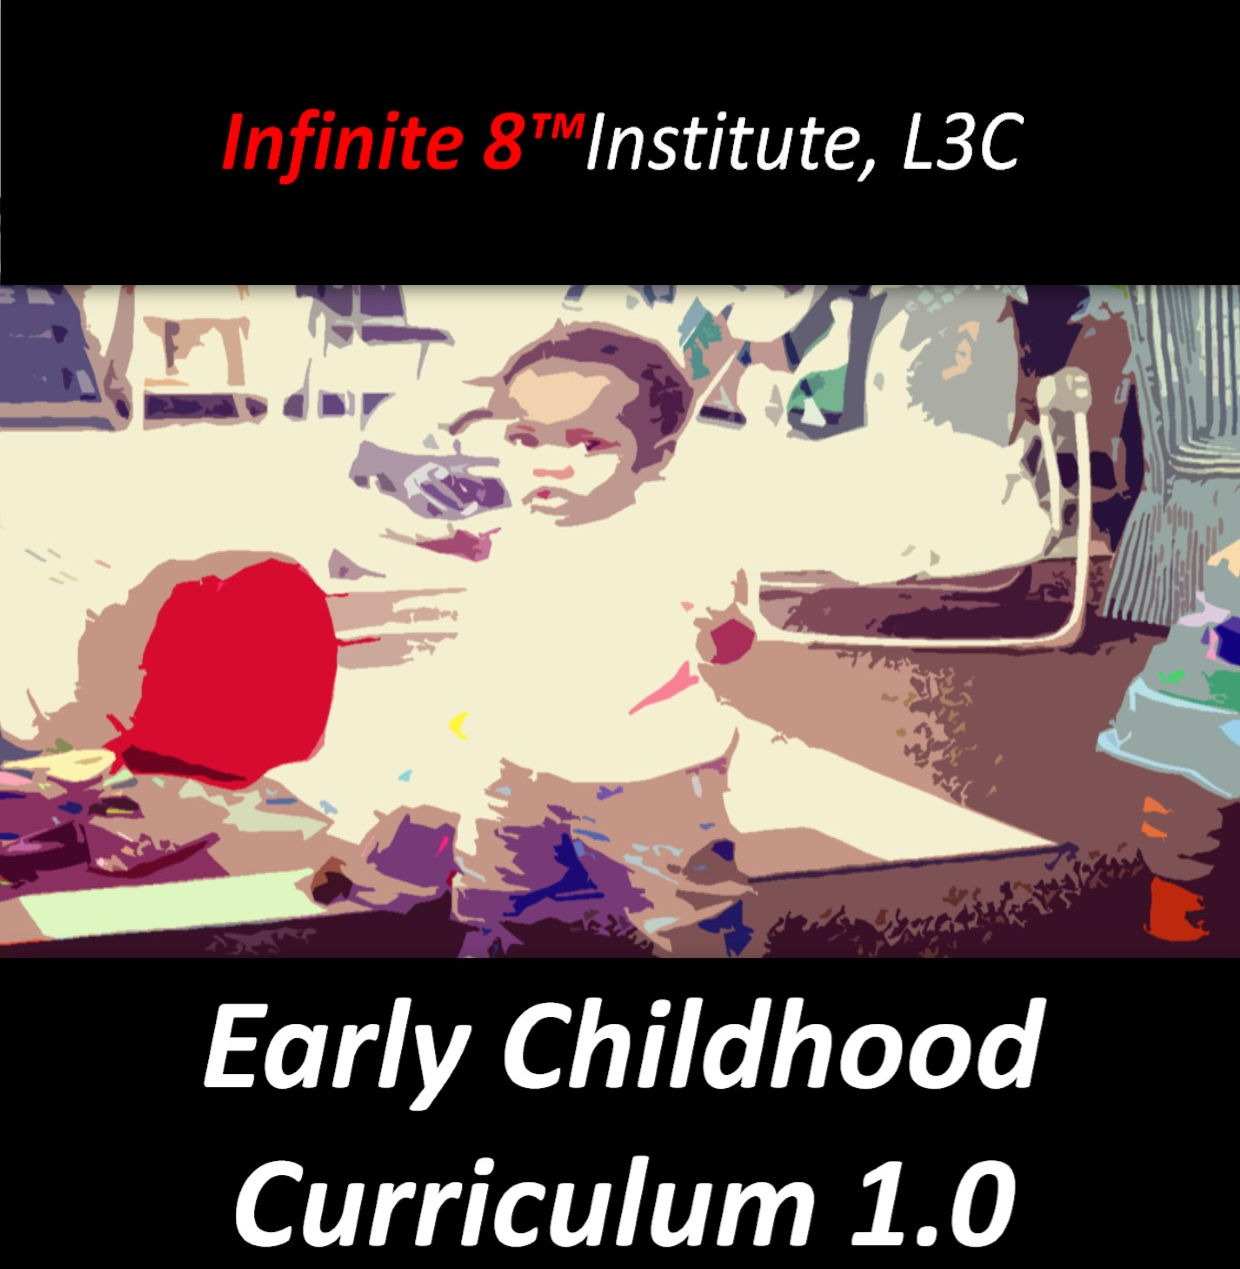 We confidently invite you to compare our early childhood curriculum to that of any other existing early childhood development programming in the world.